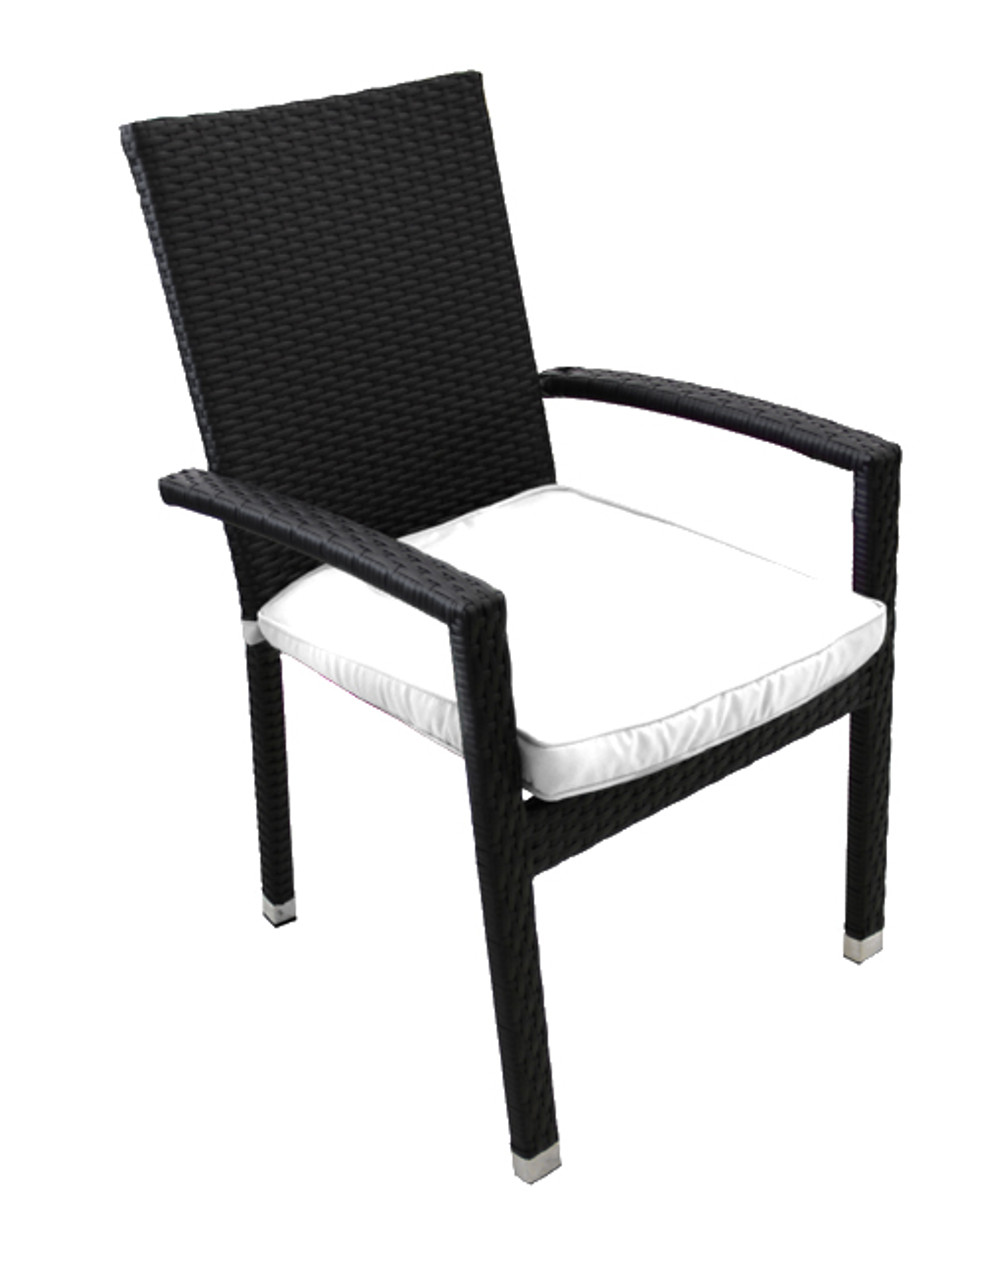 Awesome 7 Piece Black And White Resin Wicker Outdoor Furniture Patio Dining Set 70 5 28642829 Alphanode Cool Chair Designs And Ideas Alphanodeonline